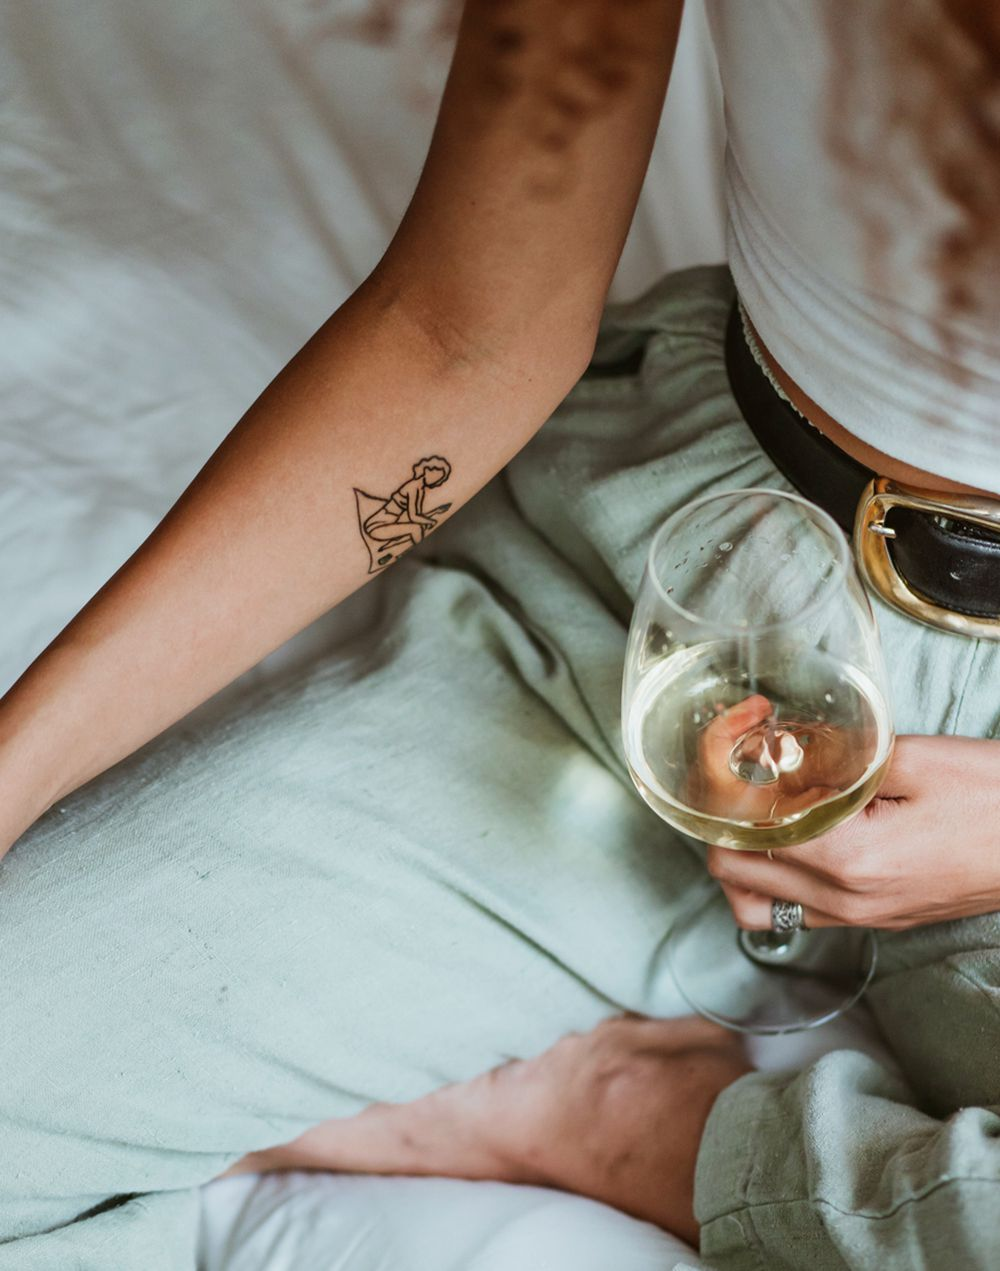 closeup of person with tattoo holding wine glass